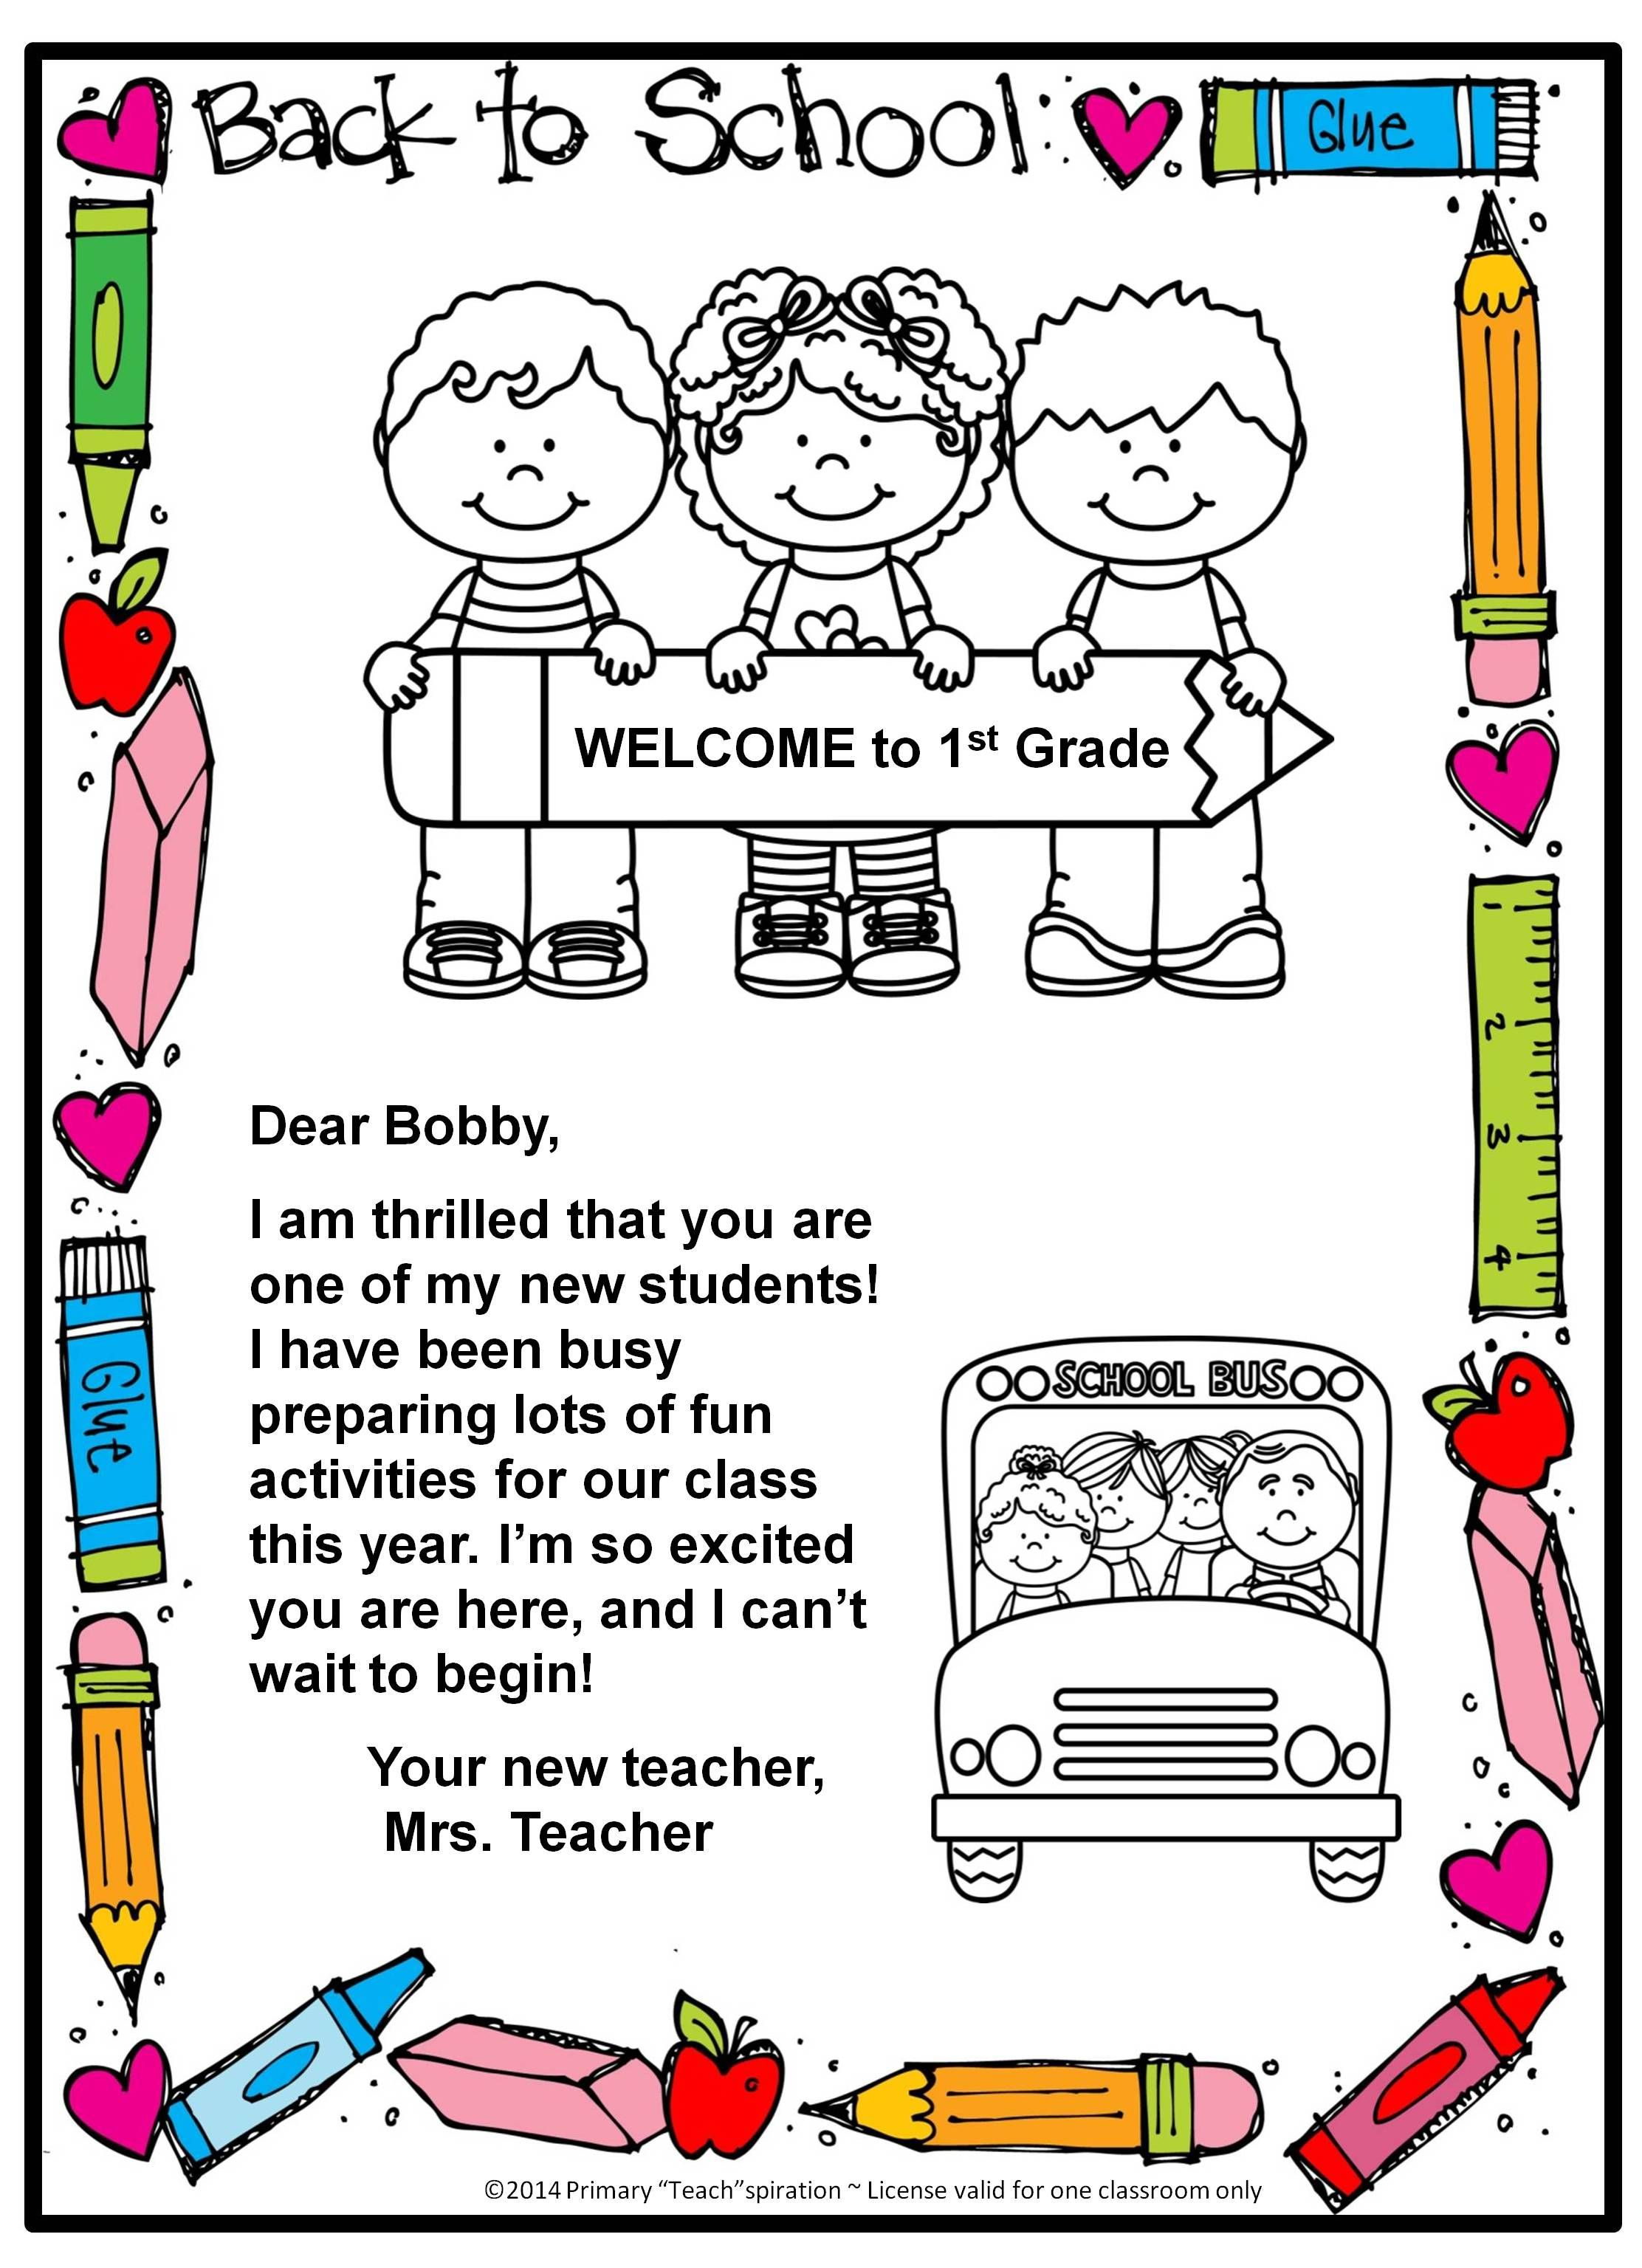 001-amazing-pre-welcome-letter-template-image Japanese Welcome Letter Template on dental new patient, new teacher, site visit, back school, free parent, existing customer, high school, interior design,